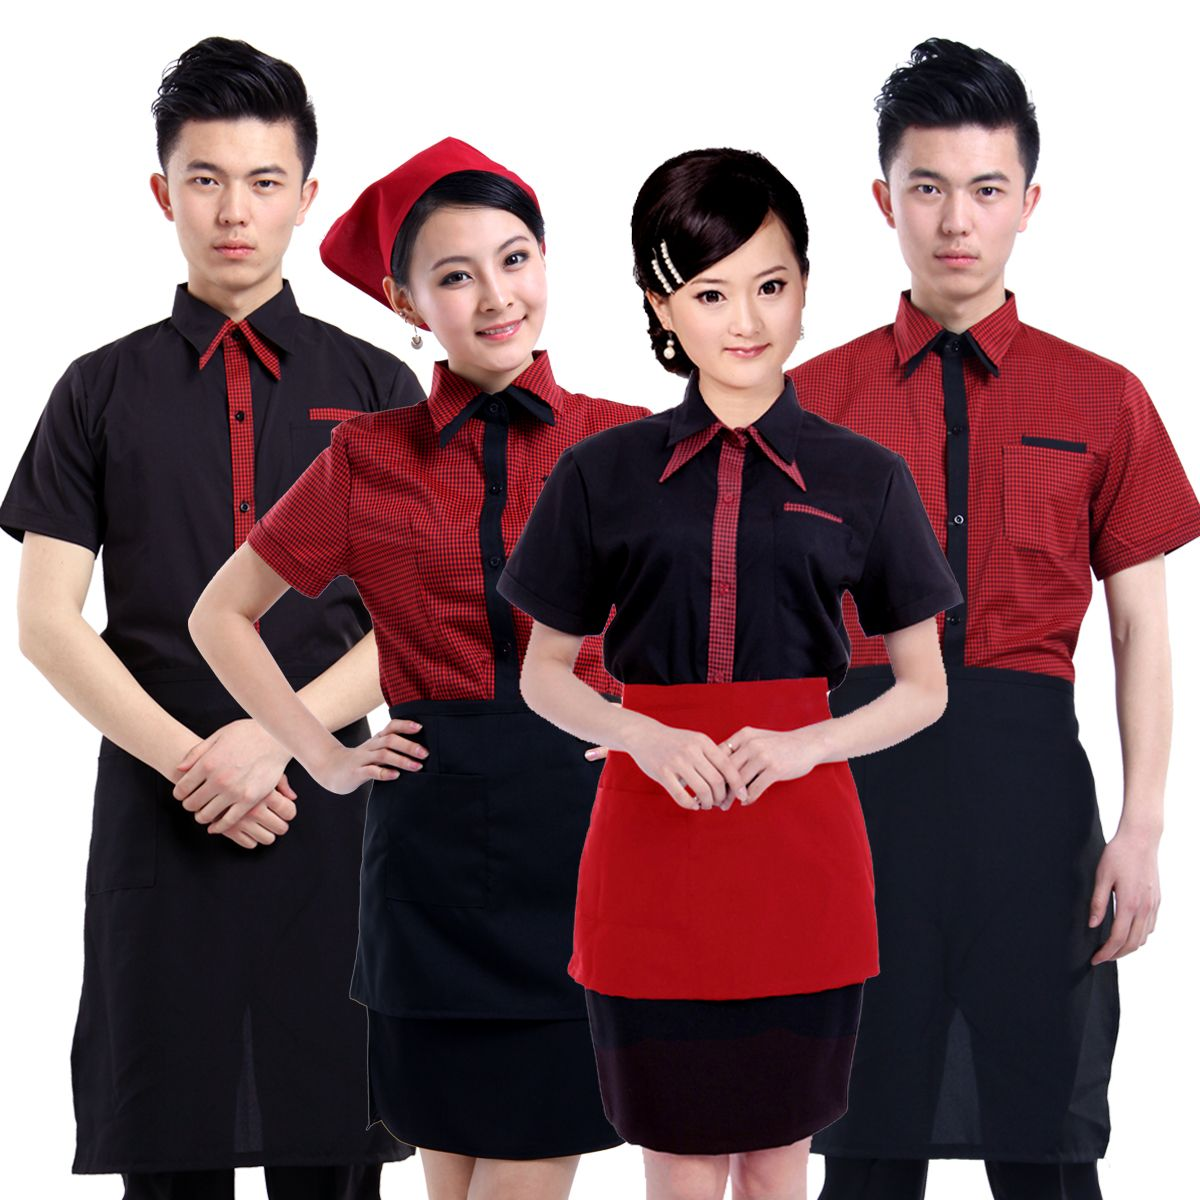 Elegant Asian Restaurant Uniform Ideas